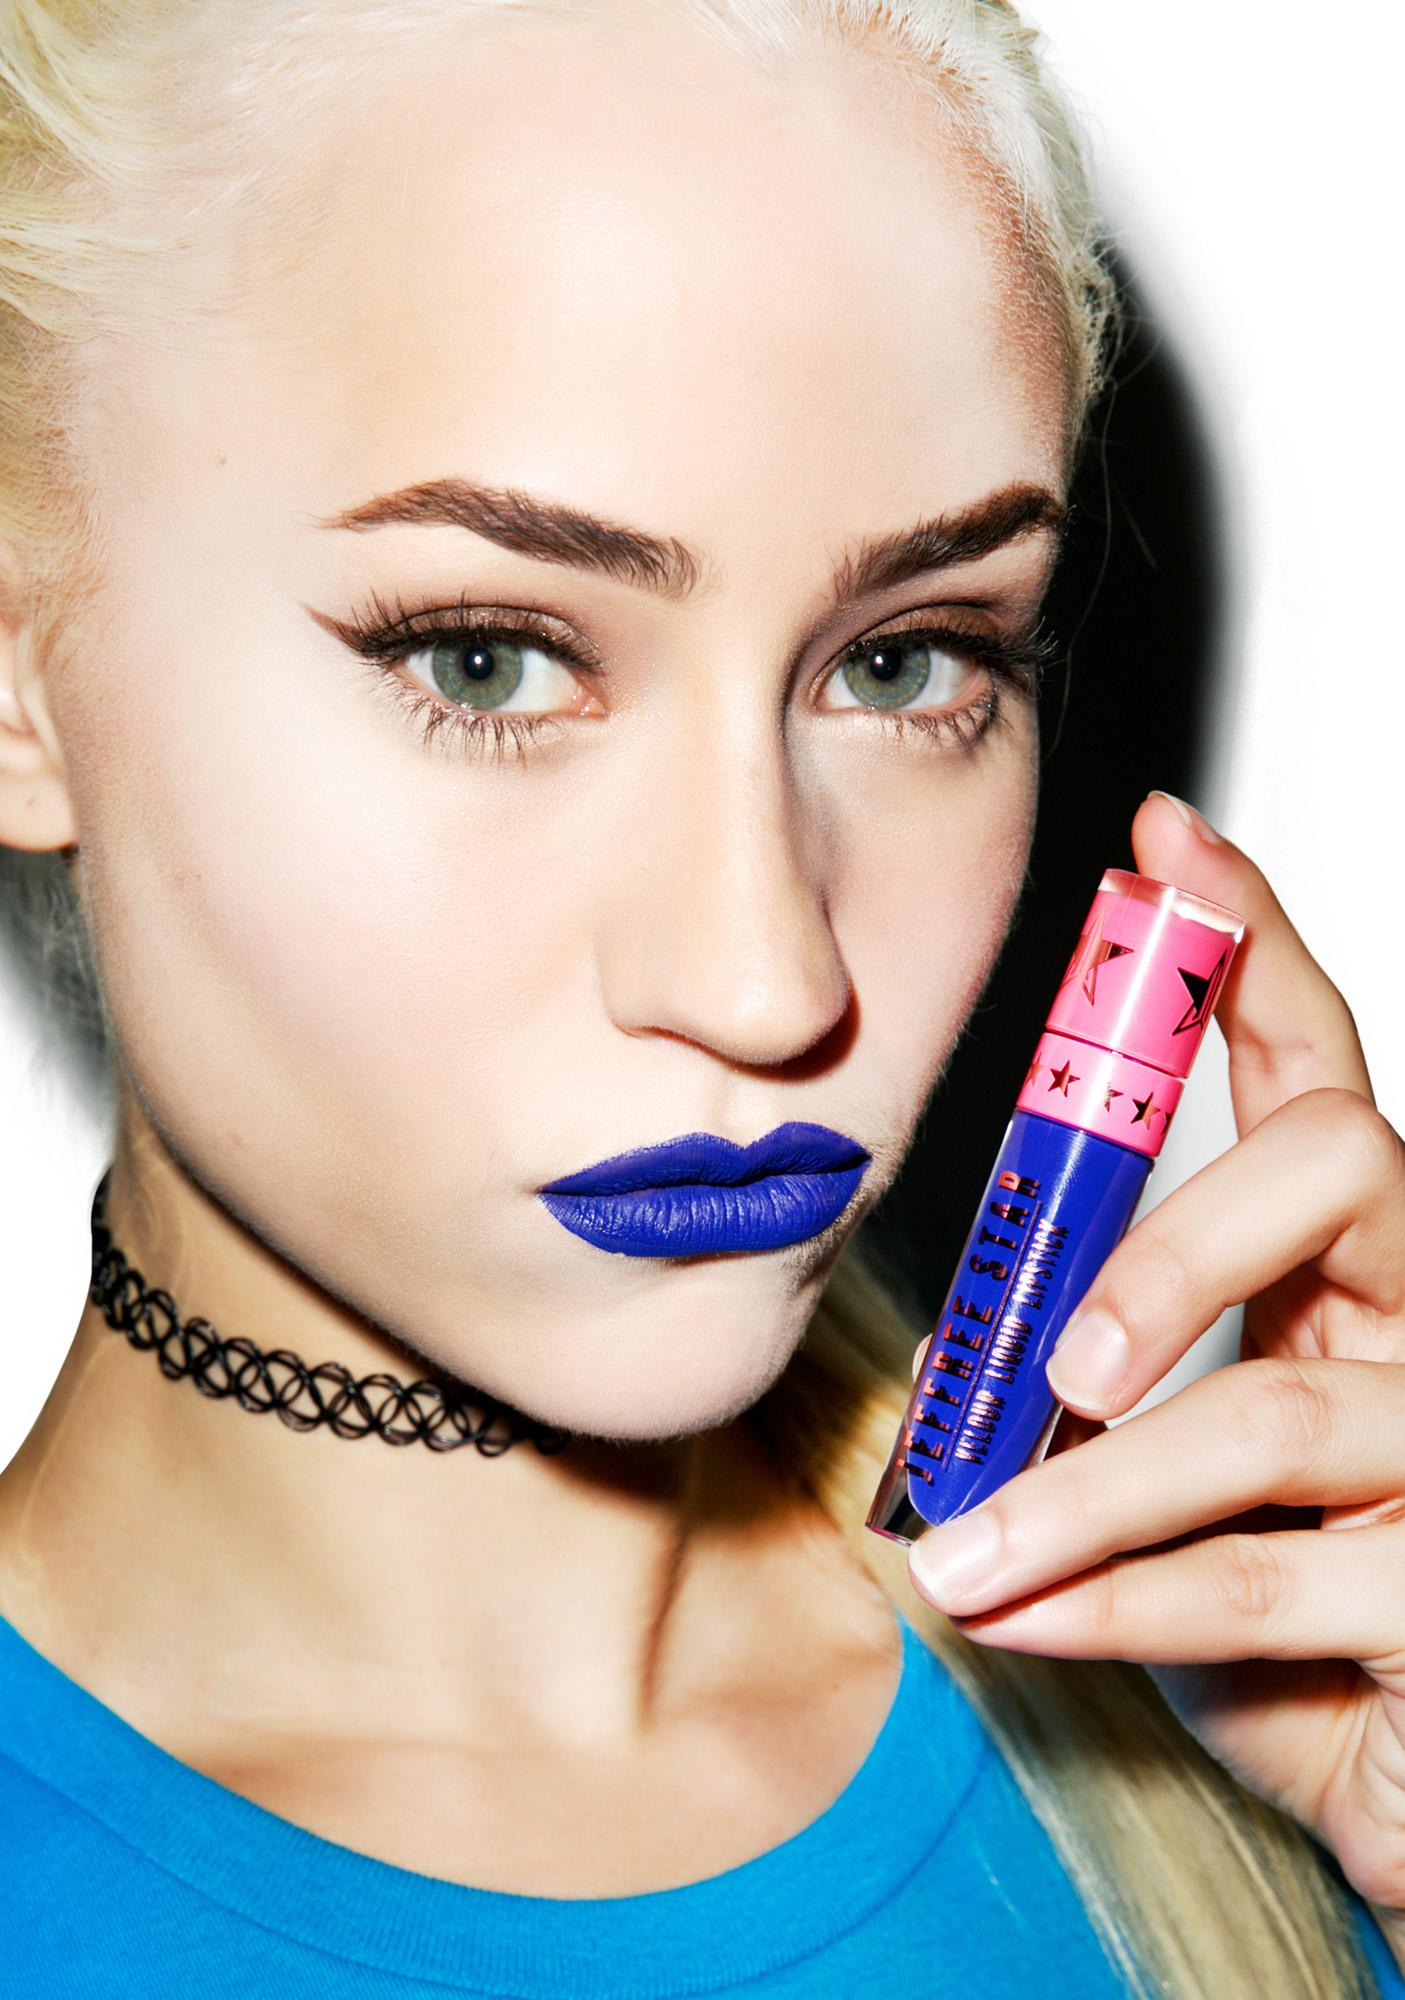 Jeffree Star Blue Velvet Liquid Lipstick